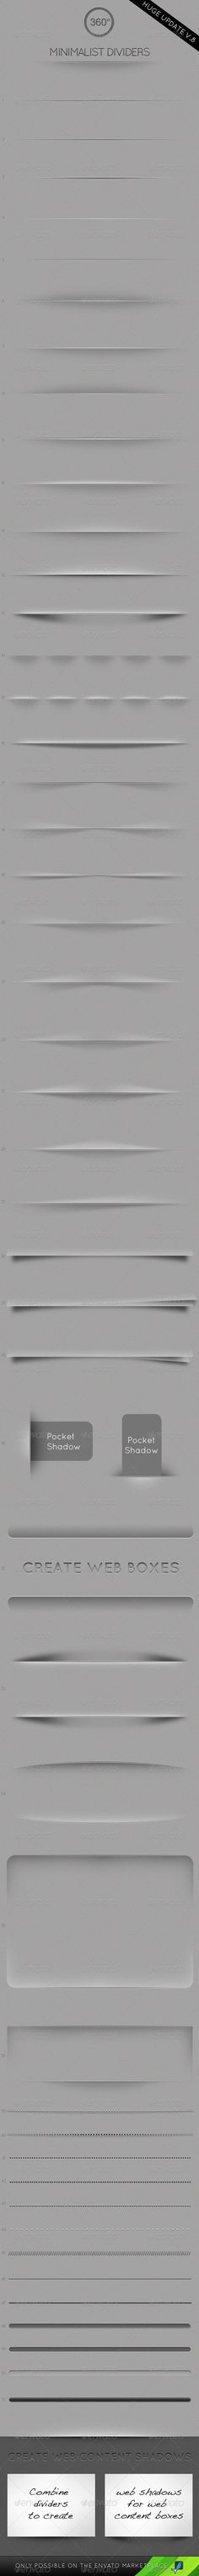 Minimalist Dividers - Resizable  - GraphicRiver Item for Sale http://graphicriver.net/item/minimalist-dividers-resizable-/146824#